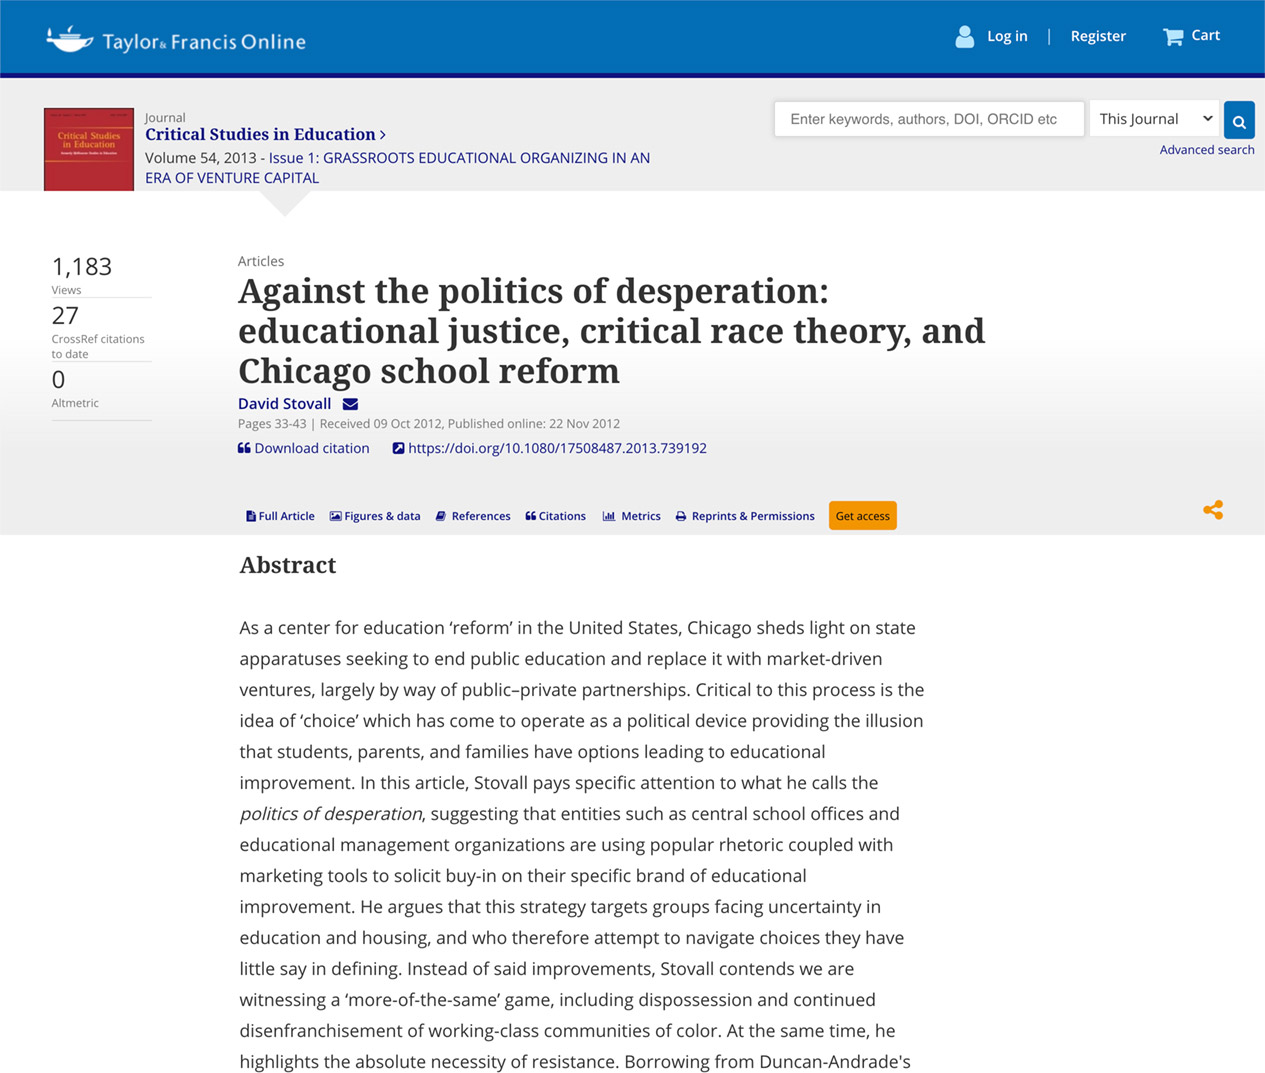 Against the politics of desperation: educational justice, critical race theory, and Chicago school reform